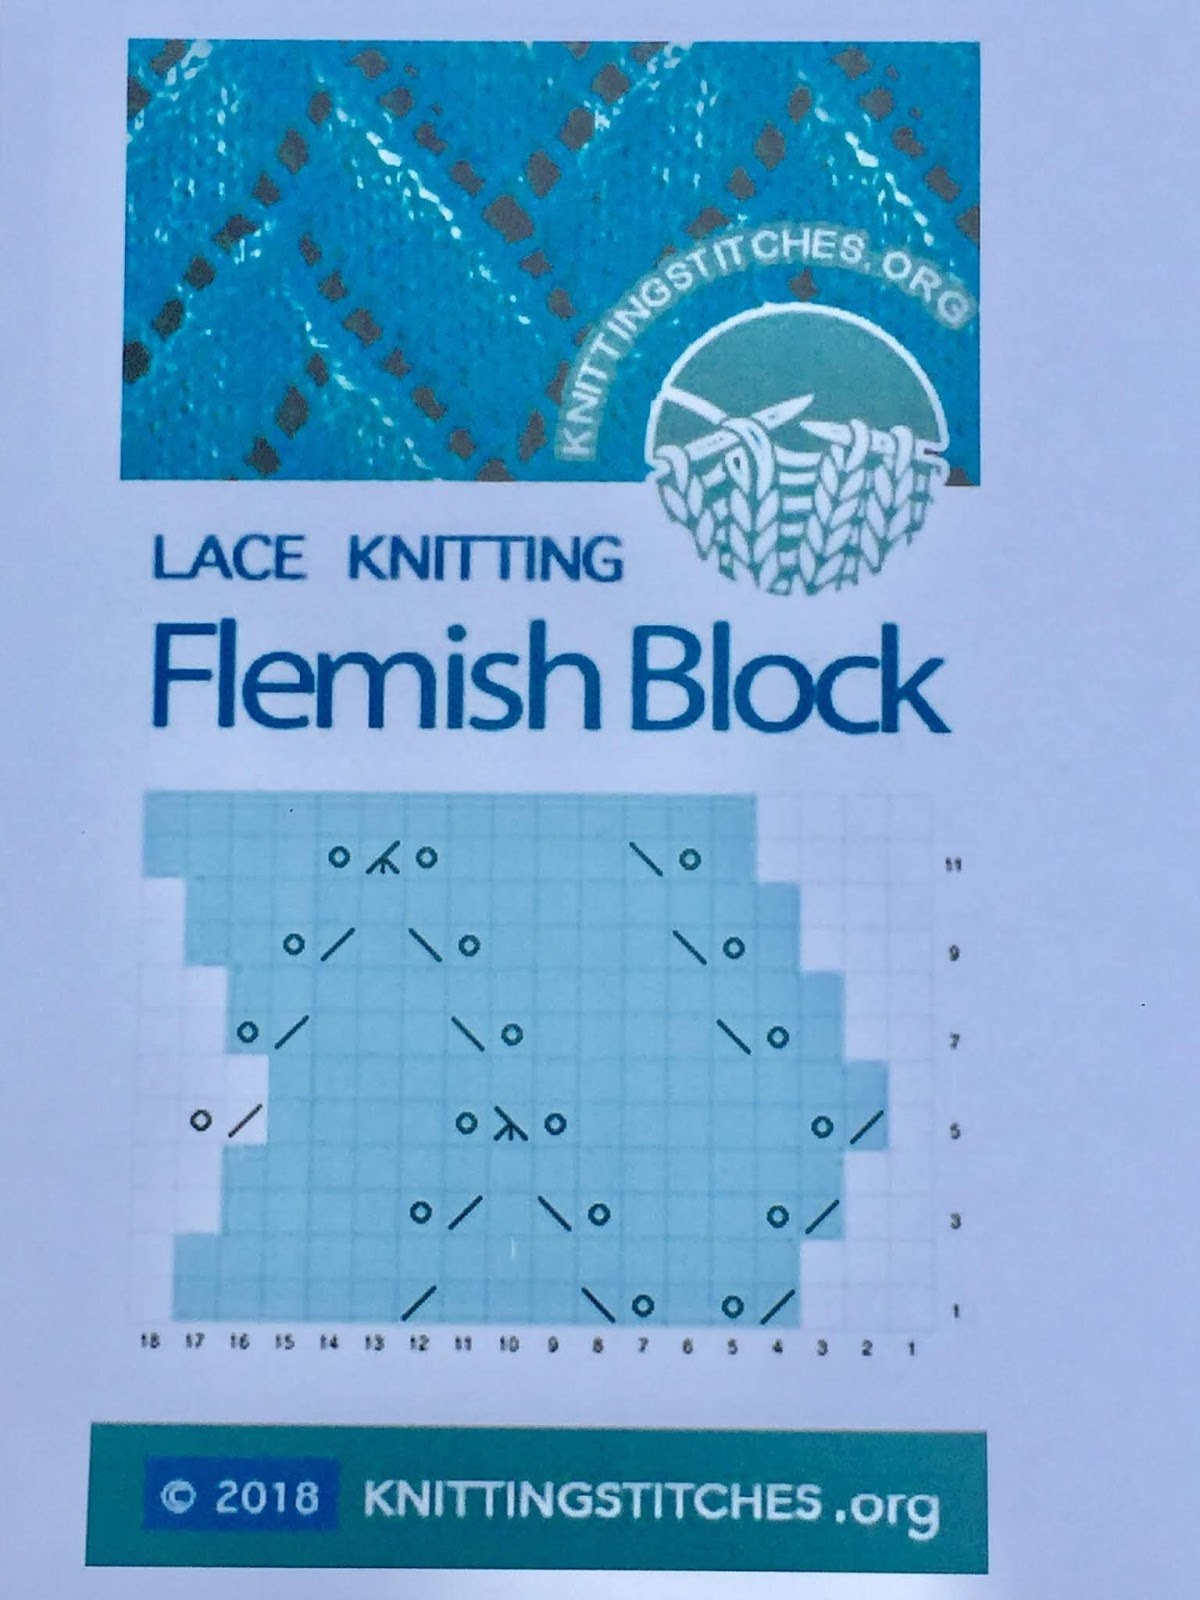 Knitting Stitches 2018 - Flemish Block lace pattern